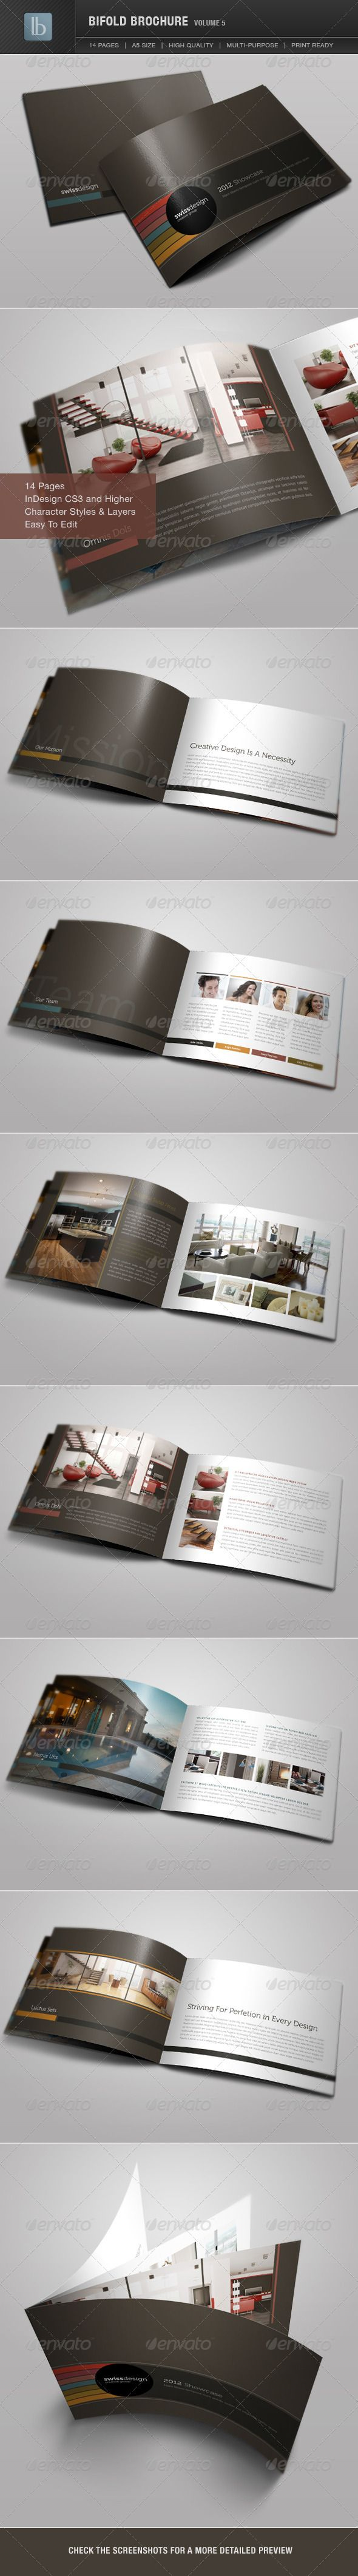 Bifold Brochure | Volume 5  #GraphicRiver                             Bifold Brochure | Volume 5 This beautifully designed brochure is extremely versatile and can be used for many purposes: portfolio book, corporate brochure, annual reports, case studies, sales catalog, etc. Clean and modern design created with InDesign. This 14 page brochure is standard A5 size, and is compatible all the way back to InDesign CS3 .